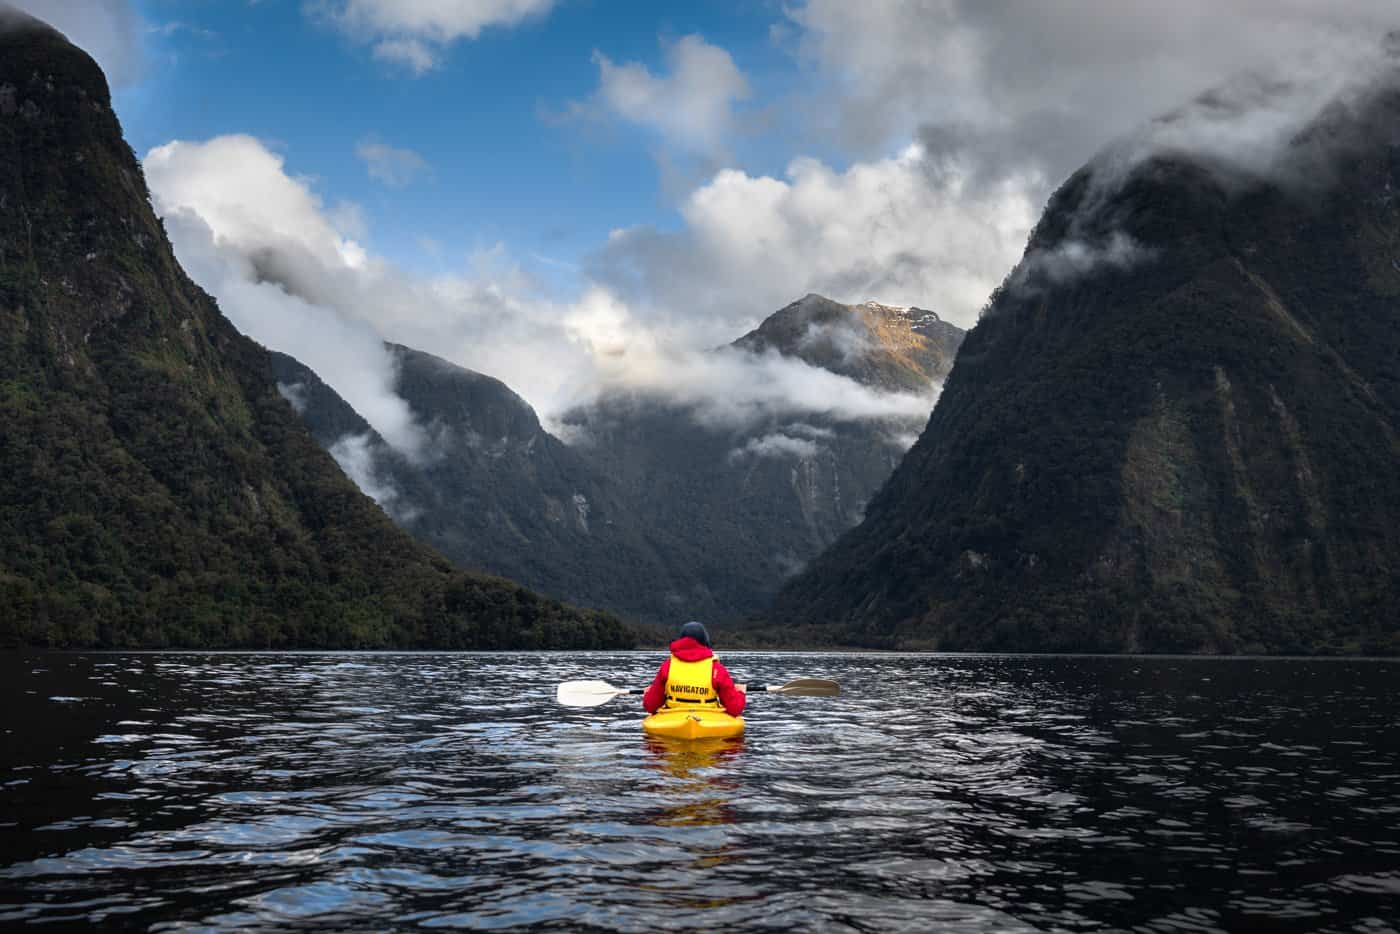 Kayaking the Doubtful Sound was a highlight of our overnight cruise.